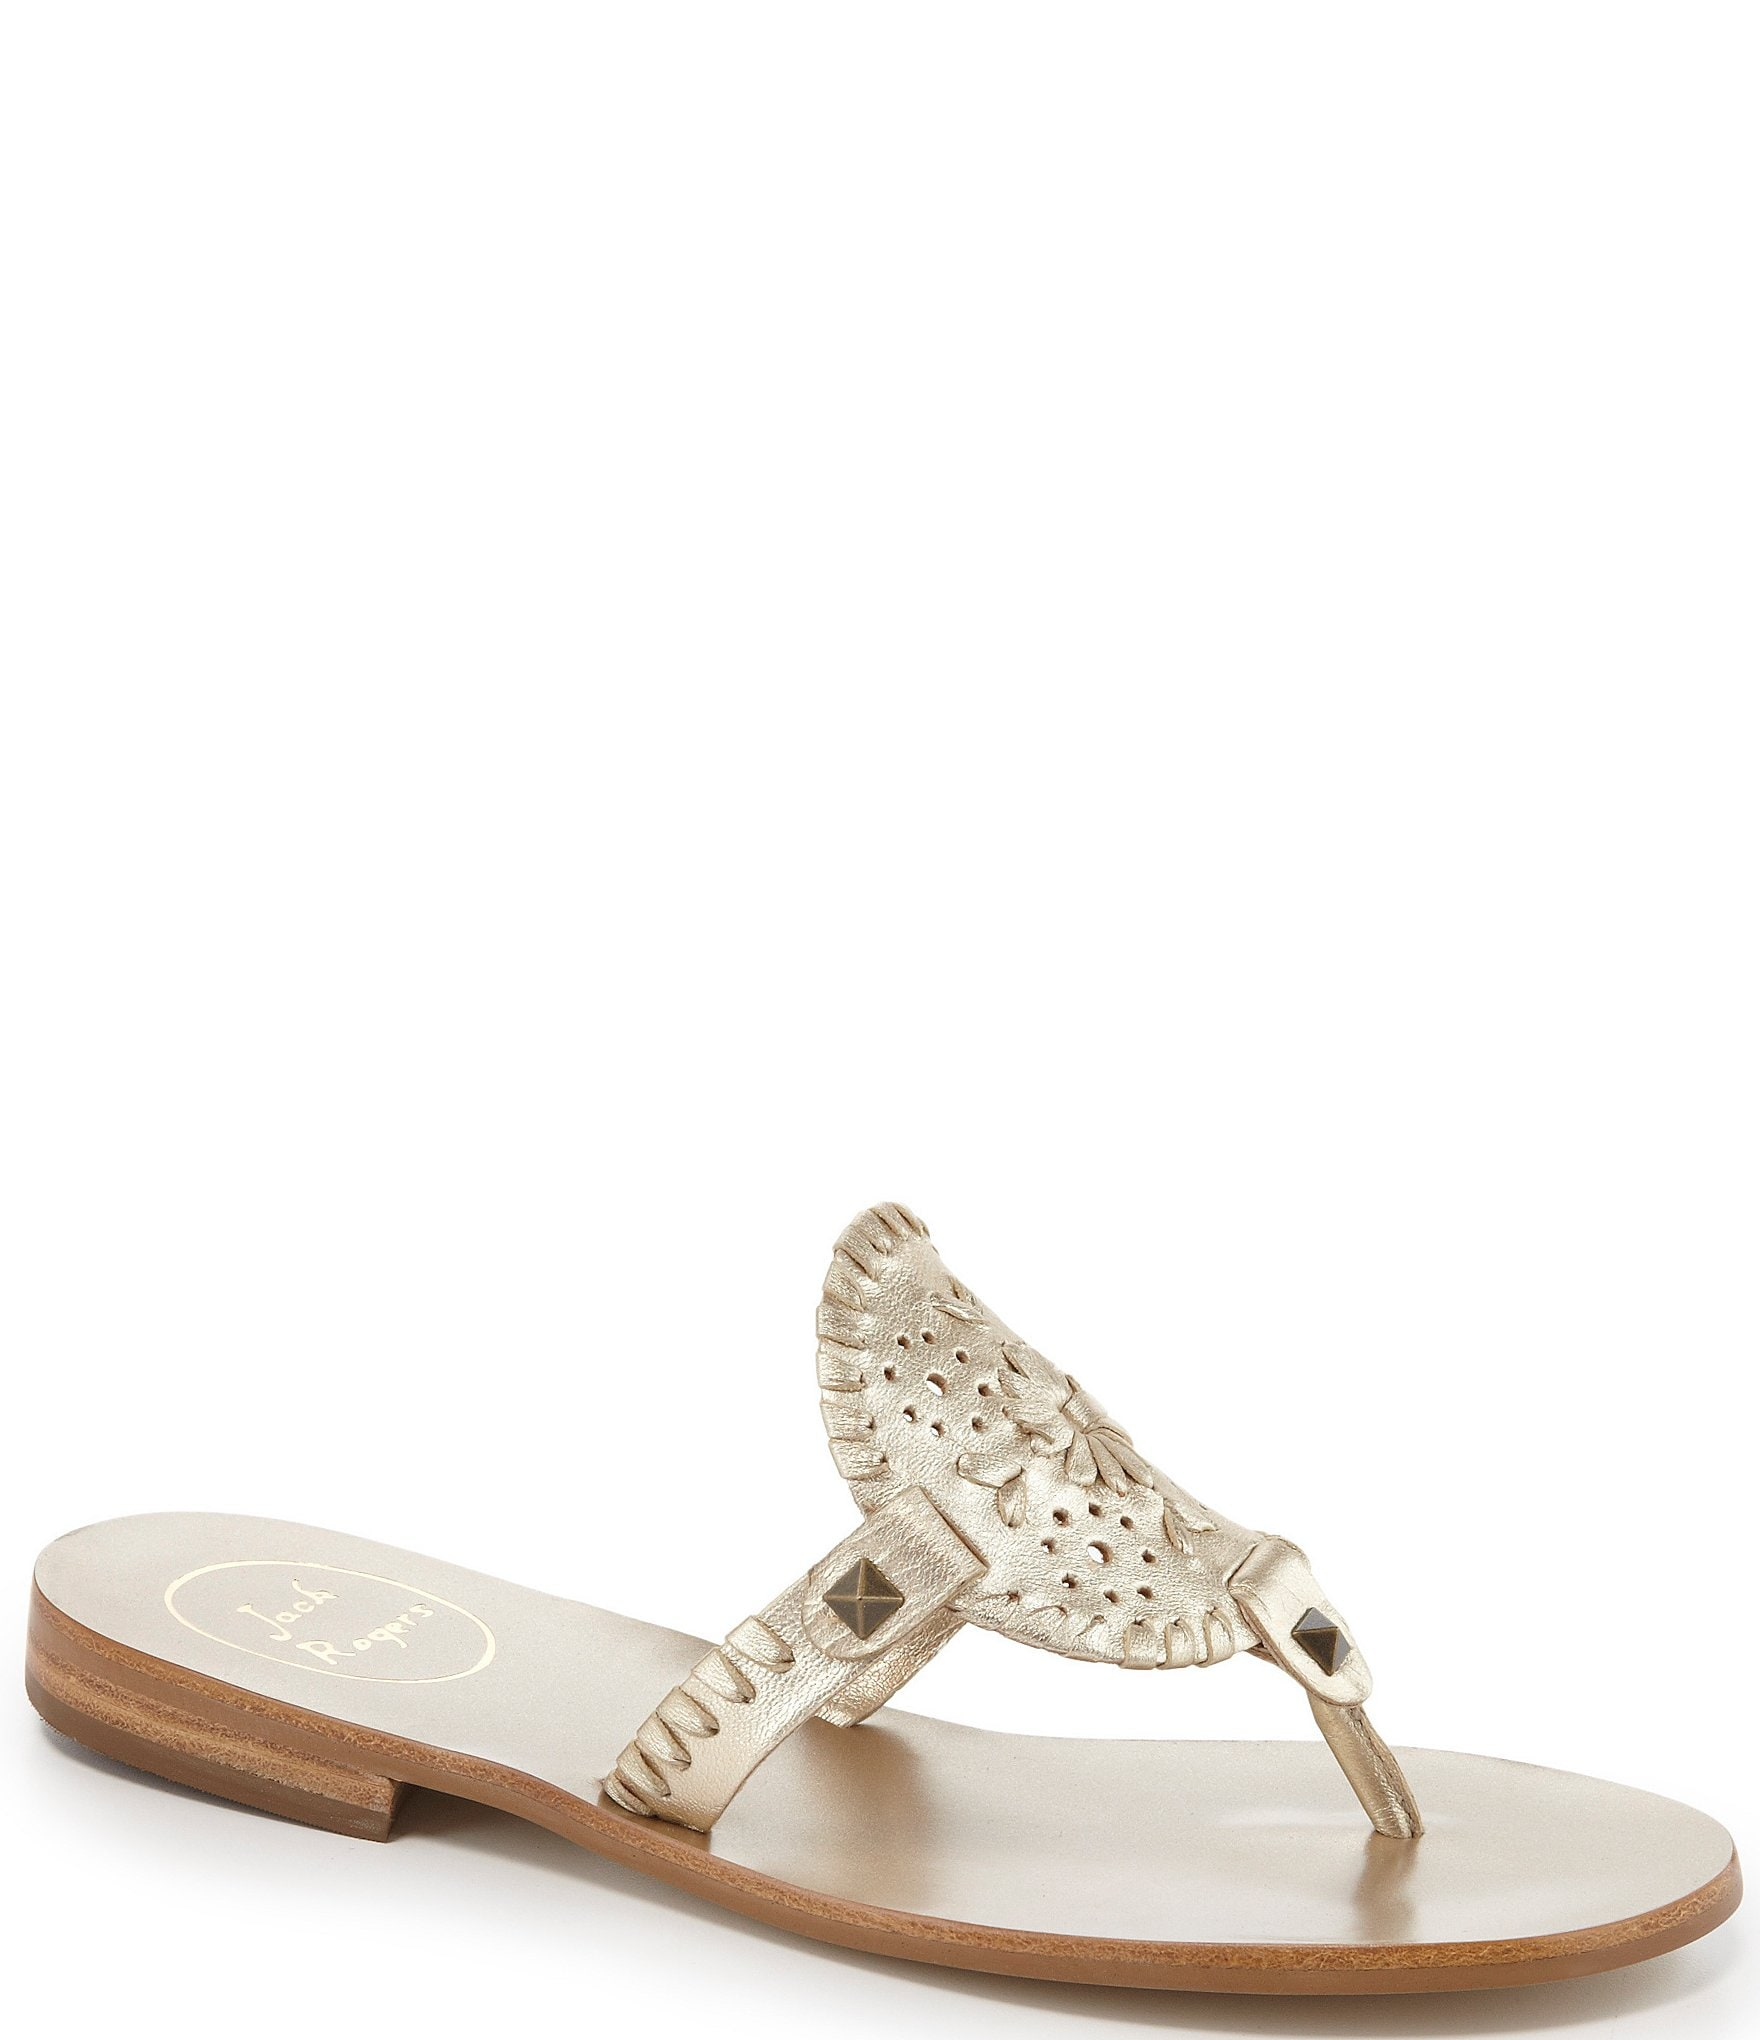 8a4455cb515 Jack Rogers Georgica Studded Leather Whipstitched Slip On Sandals ...